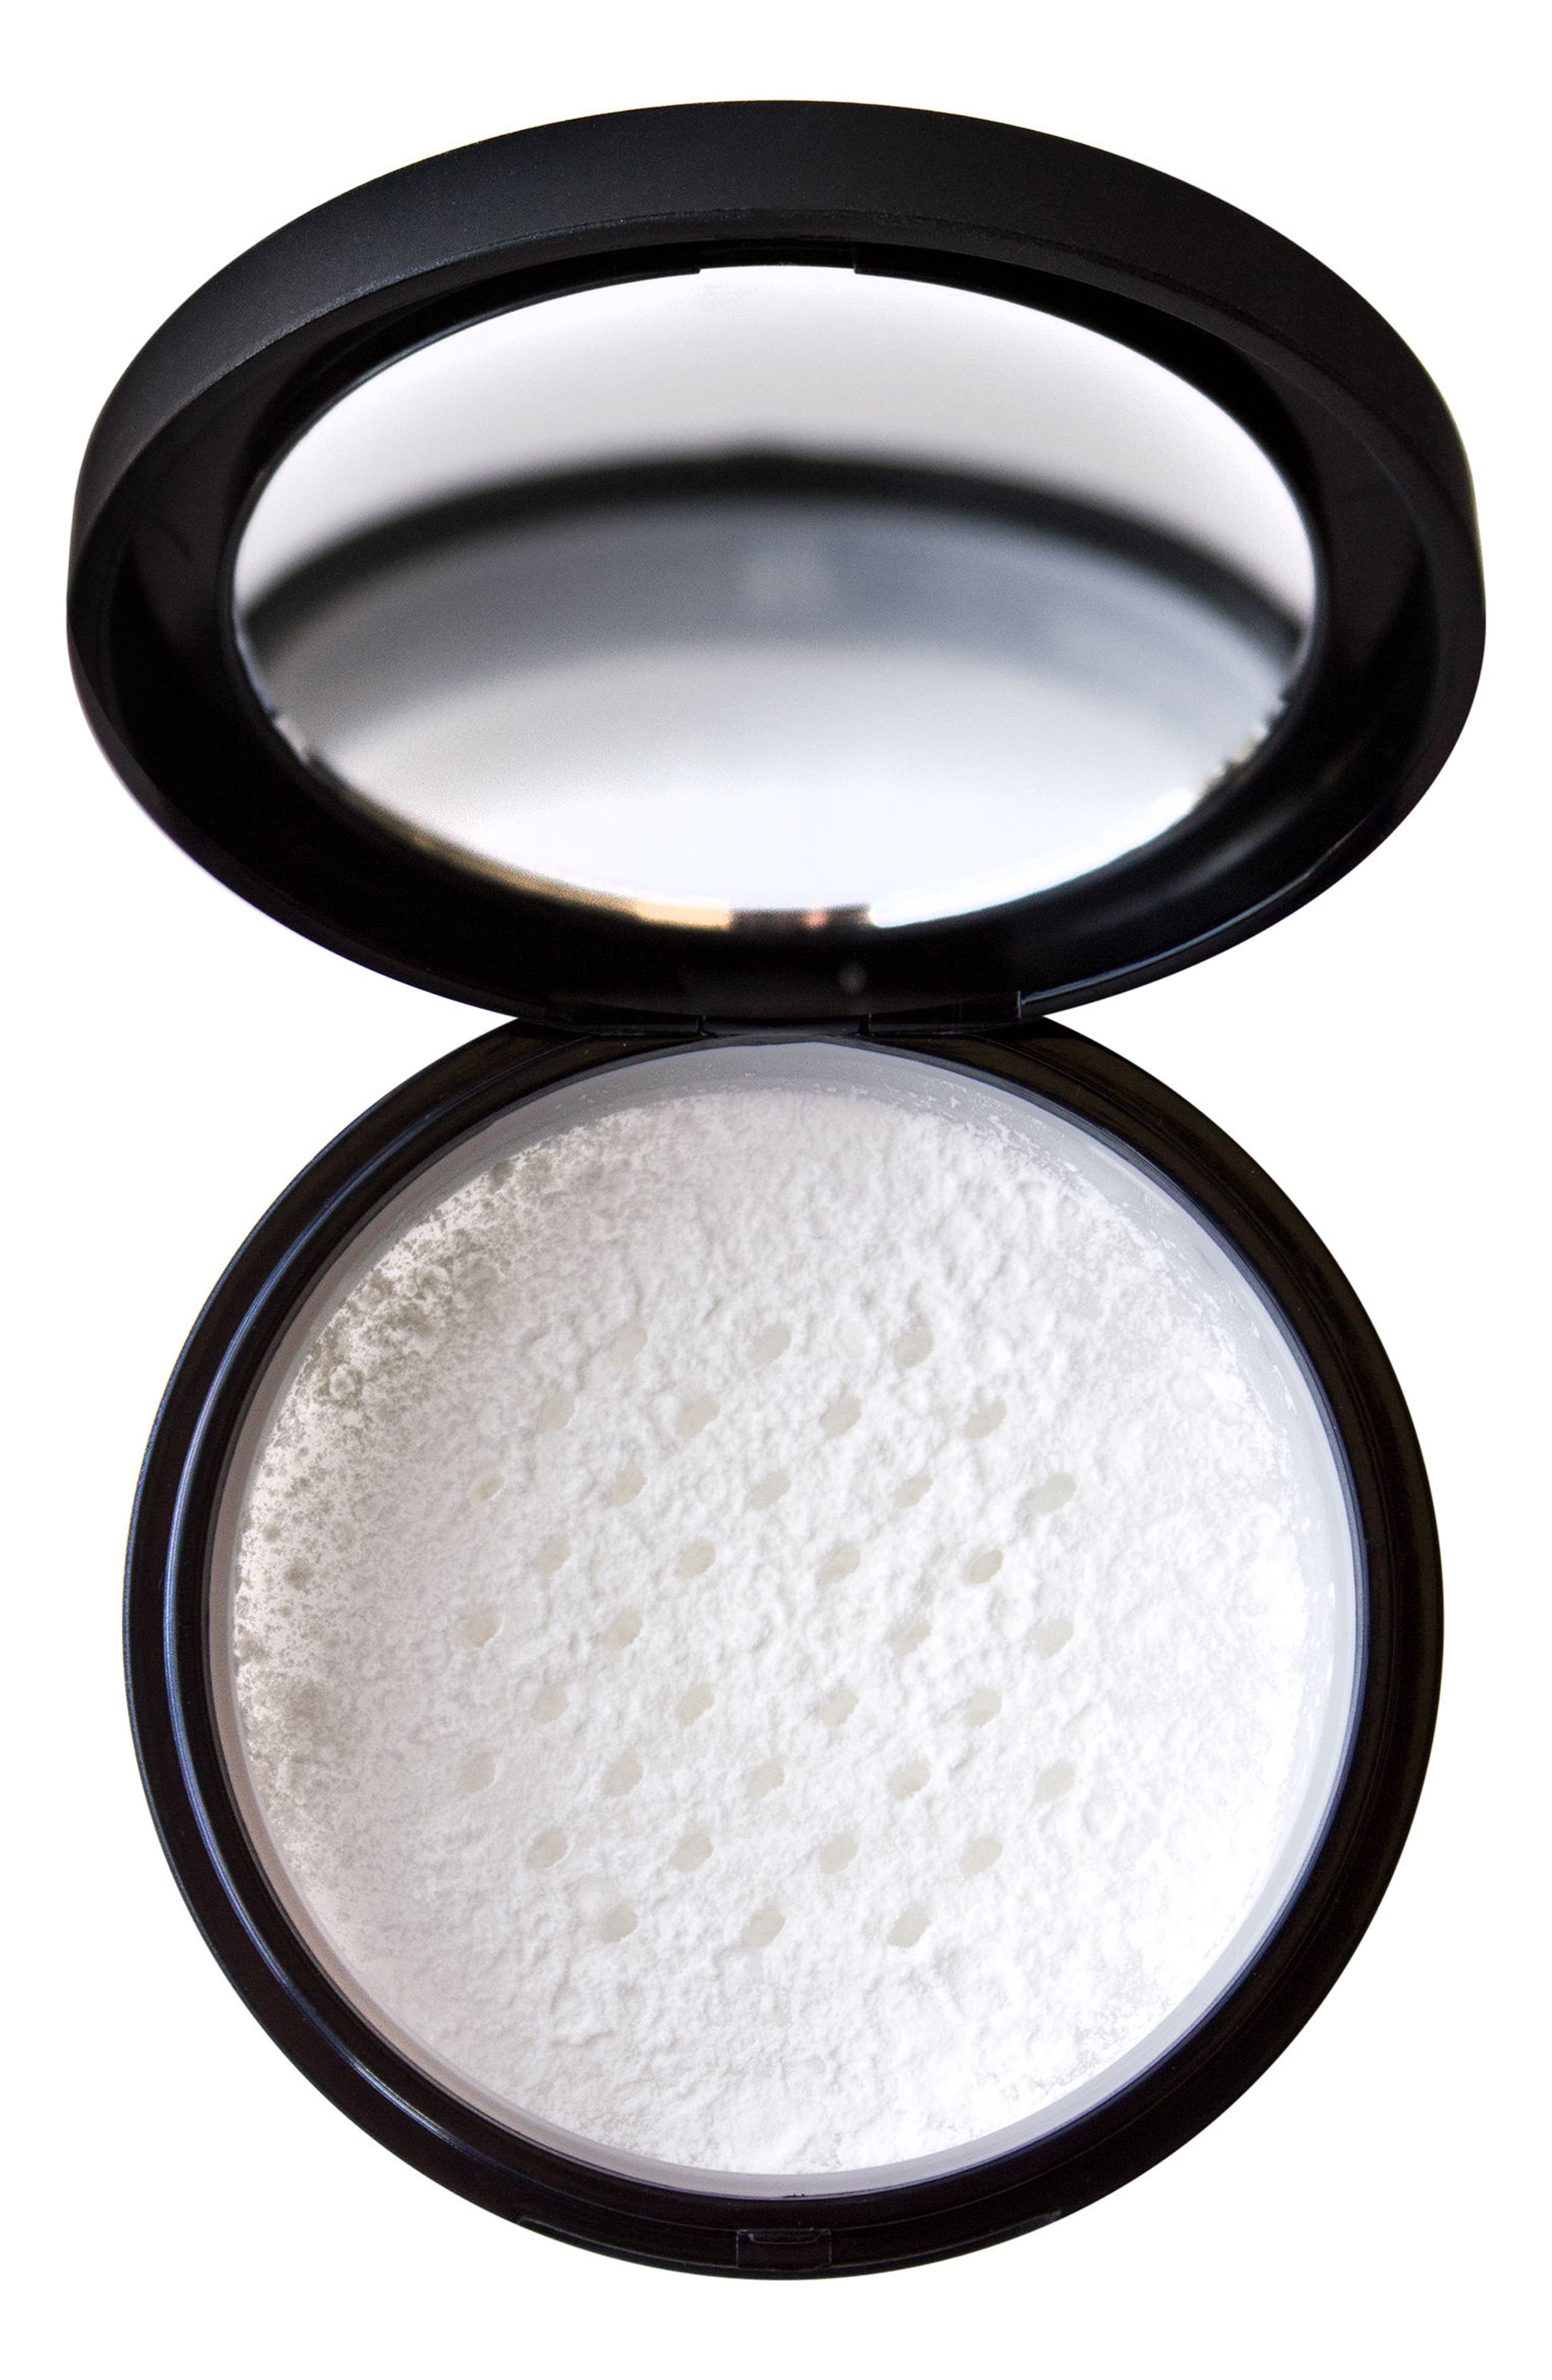 PRO Blurring Translucent Loose Powder,                             Main thumbnail 1, color,                             000